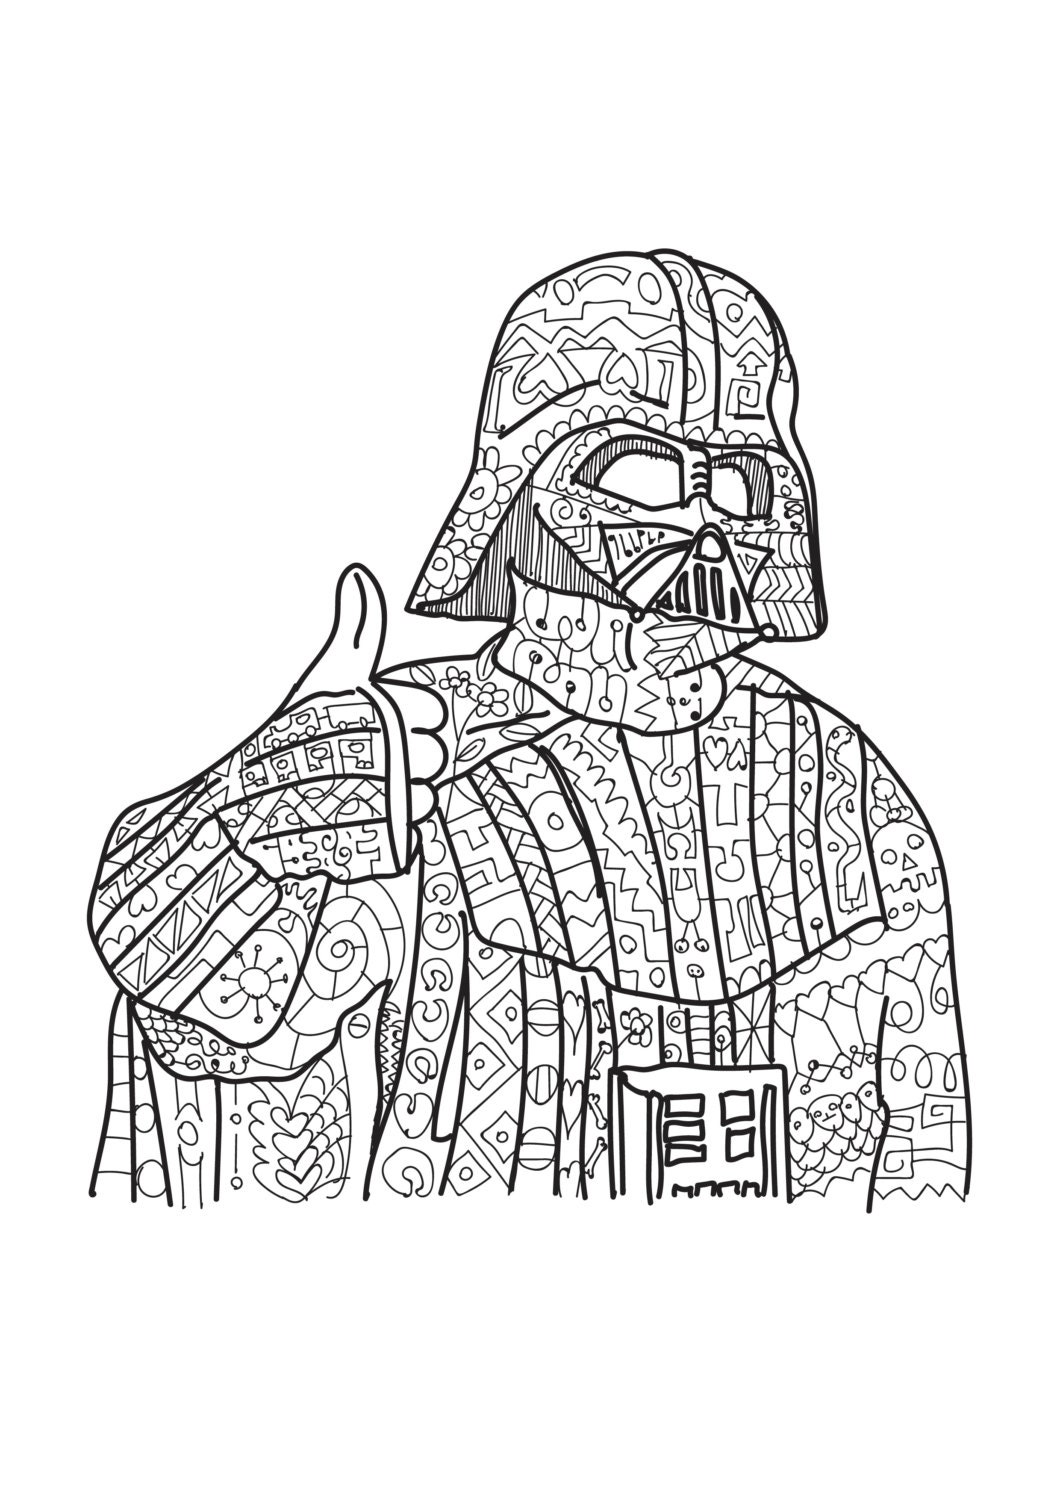 Darth Vader Star Wars coloring